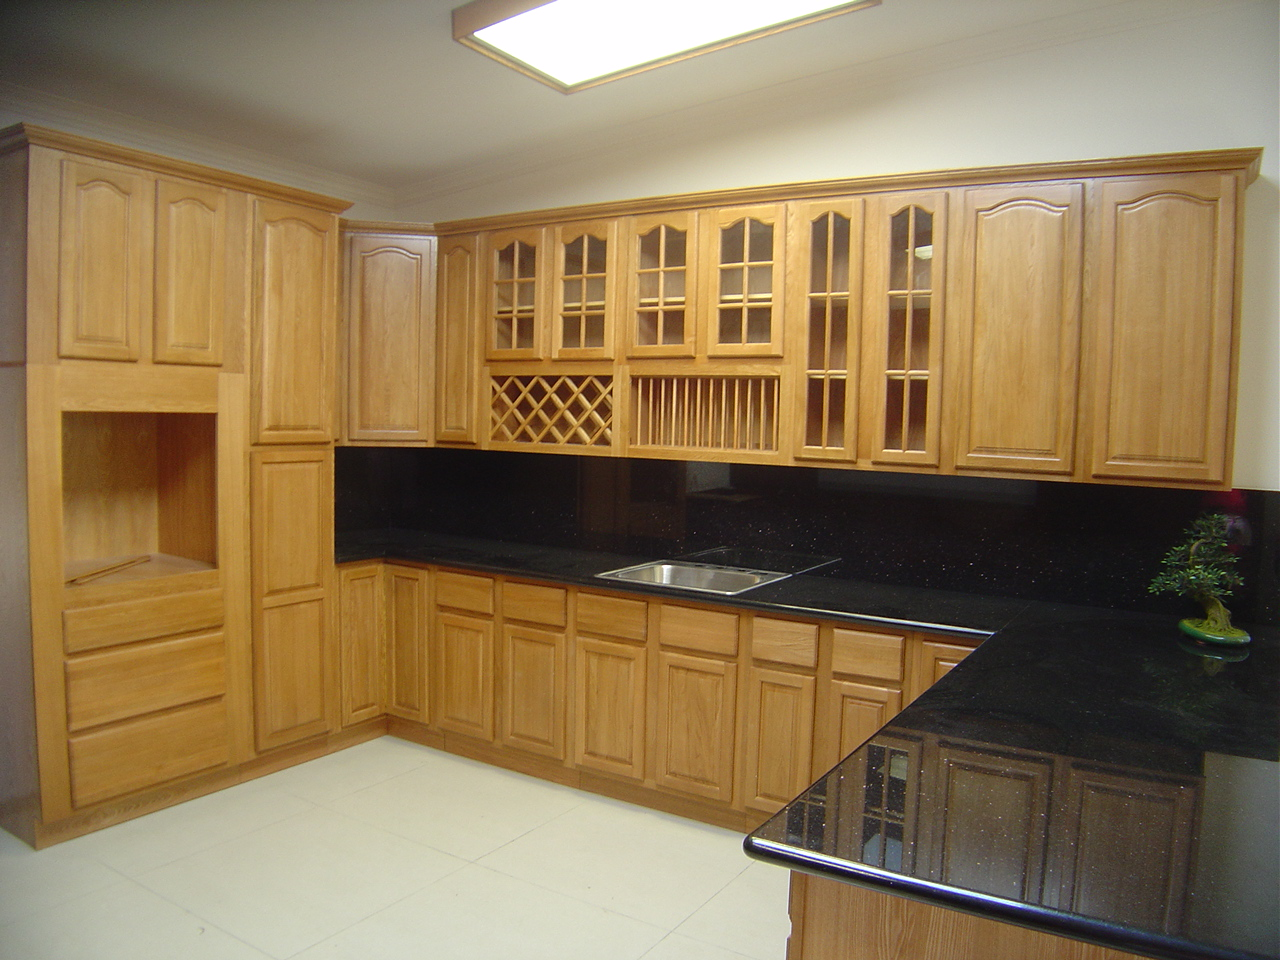 Special Kitchen Cabinet Design and Decor - Design Interior ...